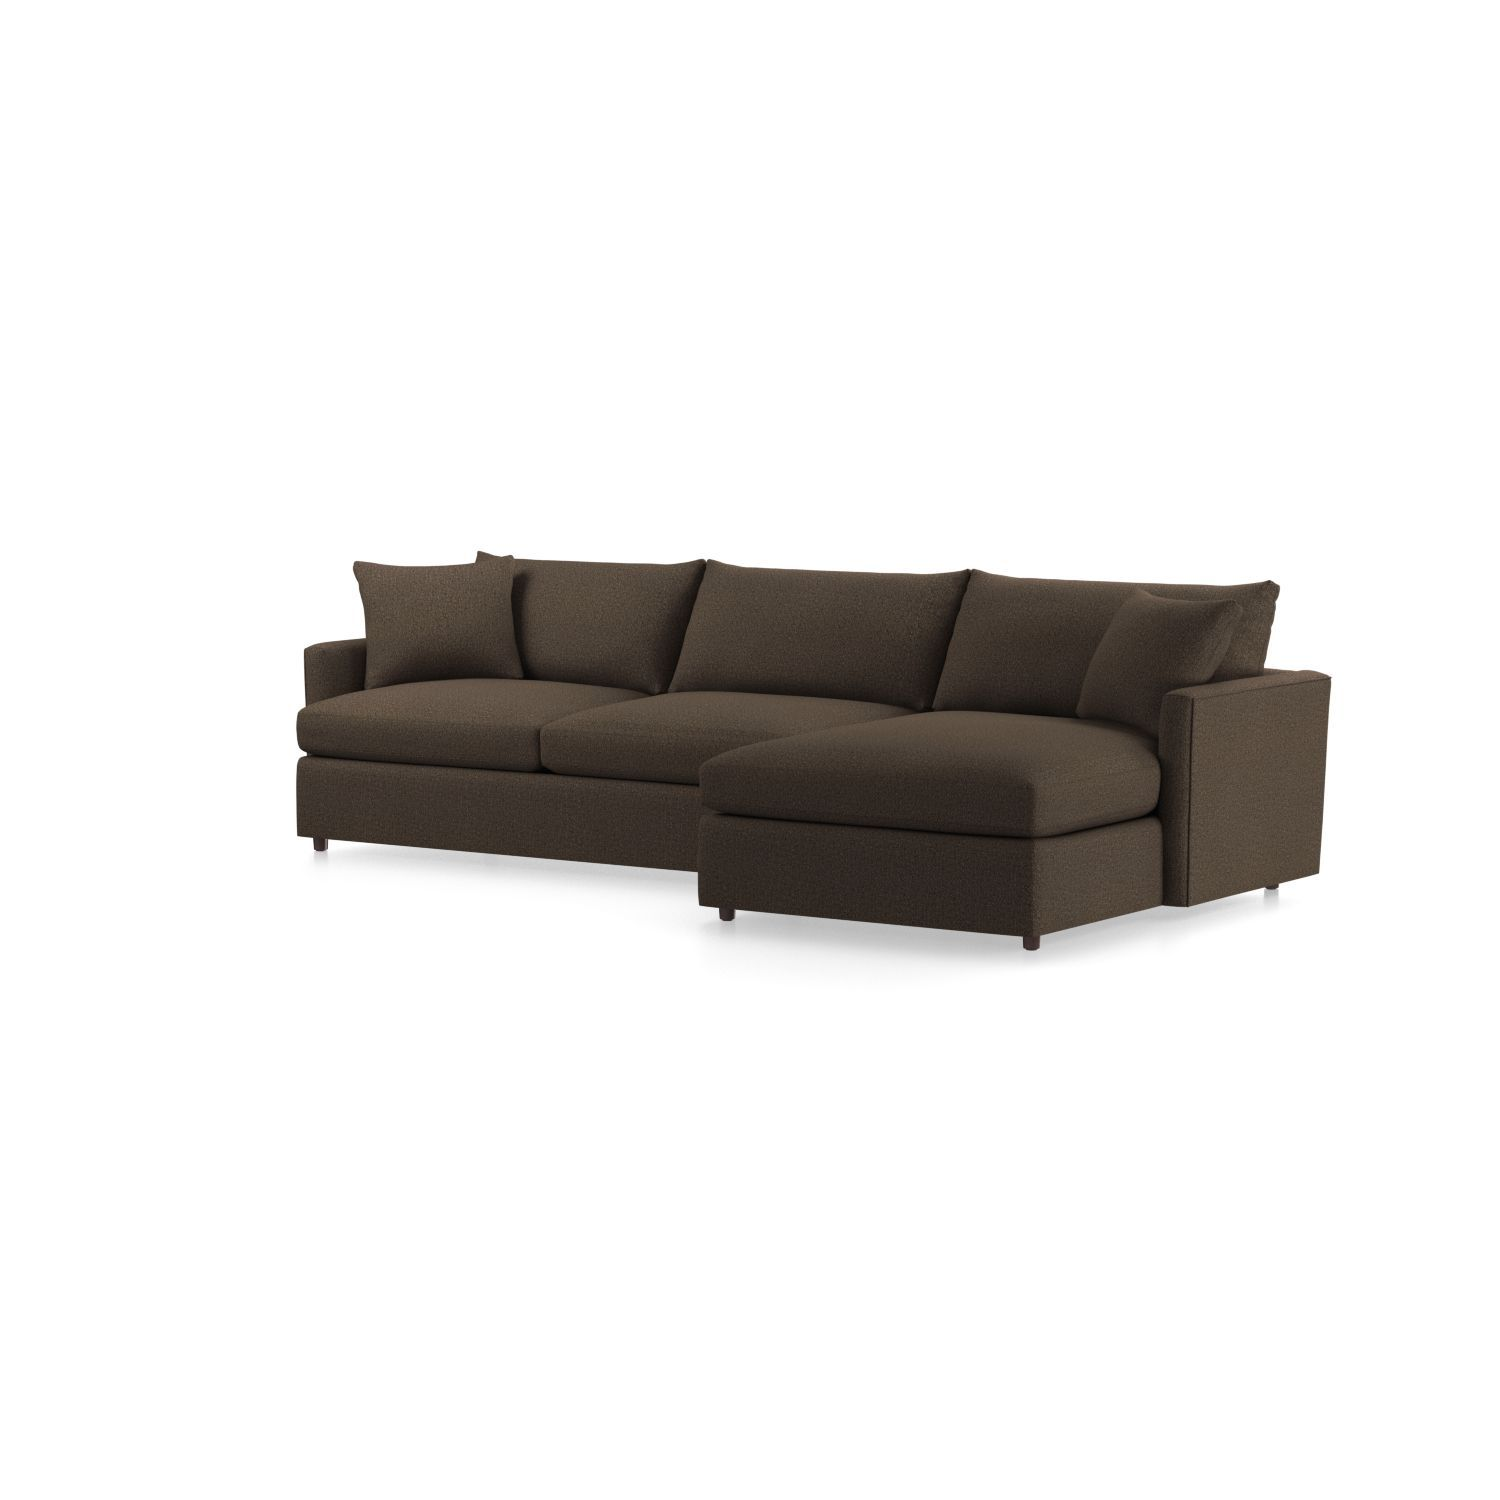 Shop lounge ii shallow sectional sofa a slim modern track arm lightens the look and provides maximum sitting space this petite sectional sofa comprising